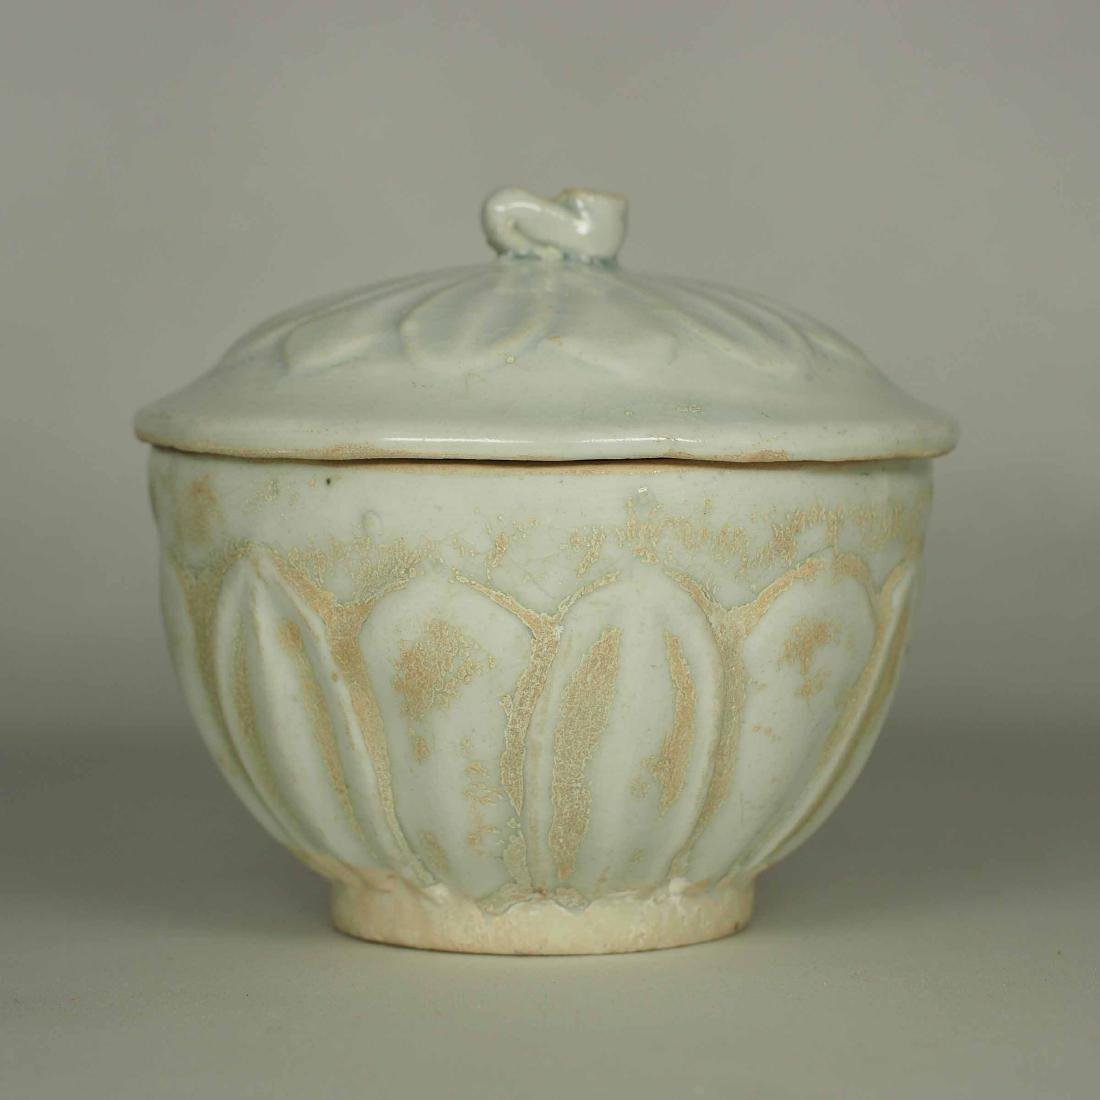 Qingbai Small Lidded Jar with Moulded Lotus, Song